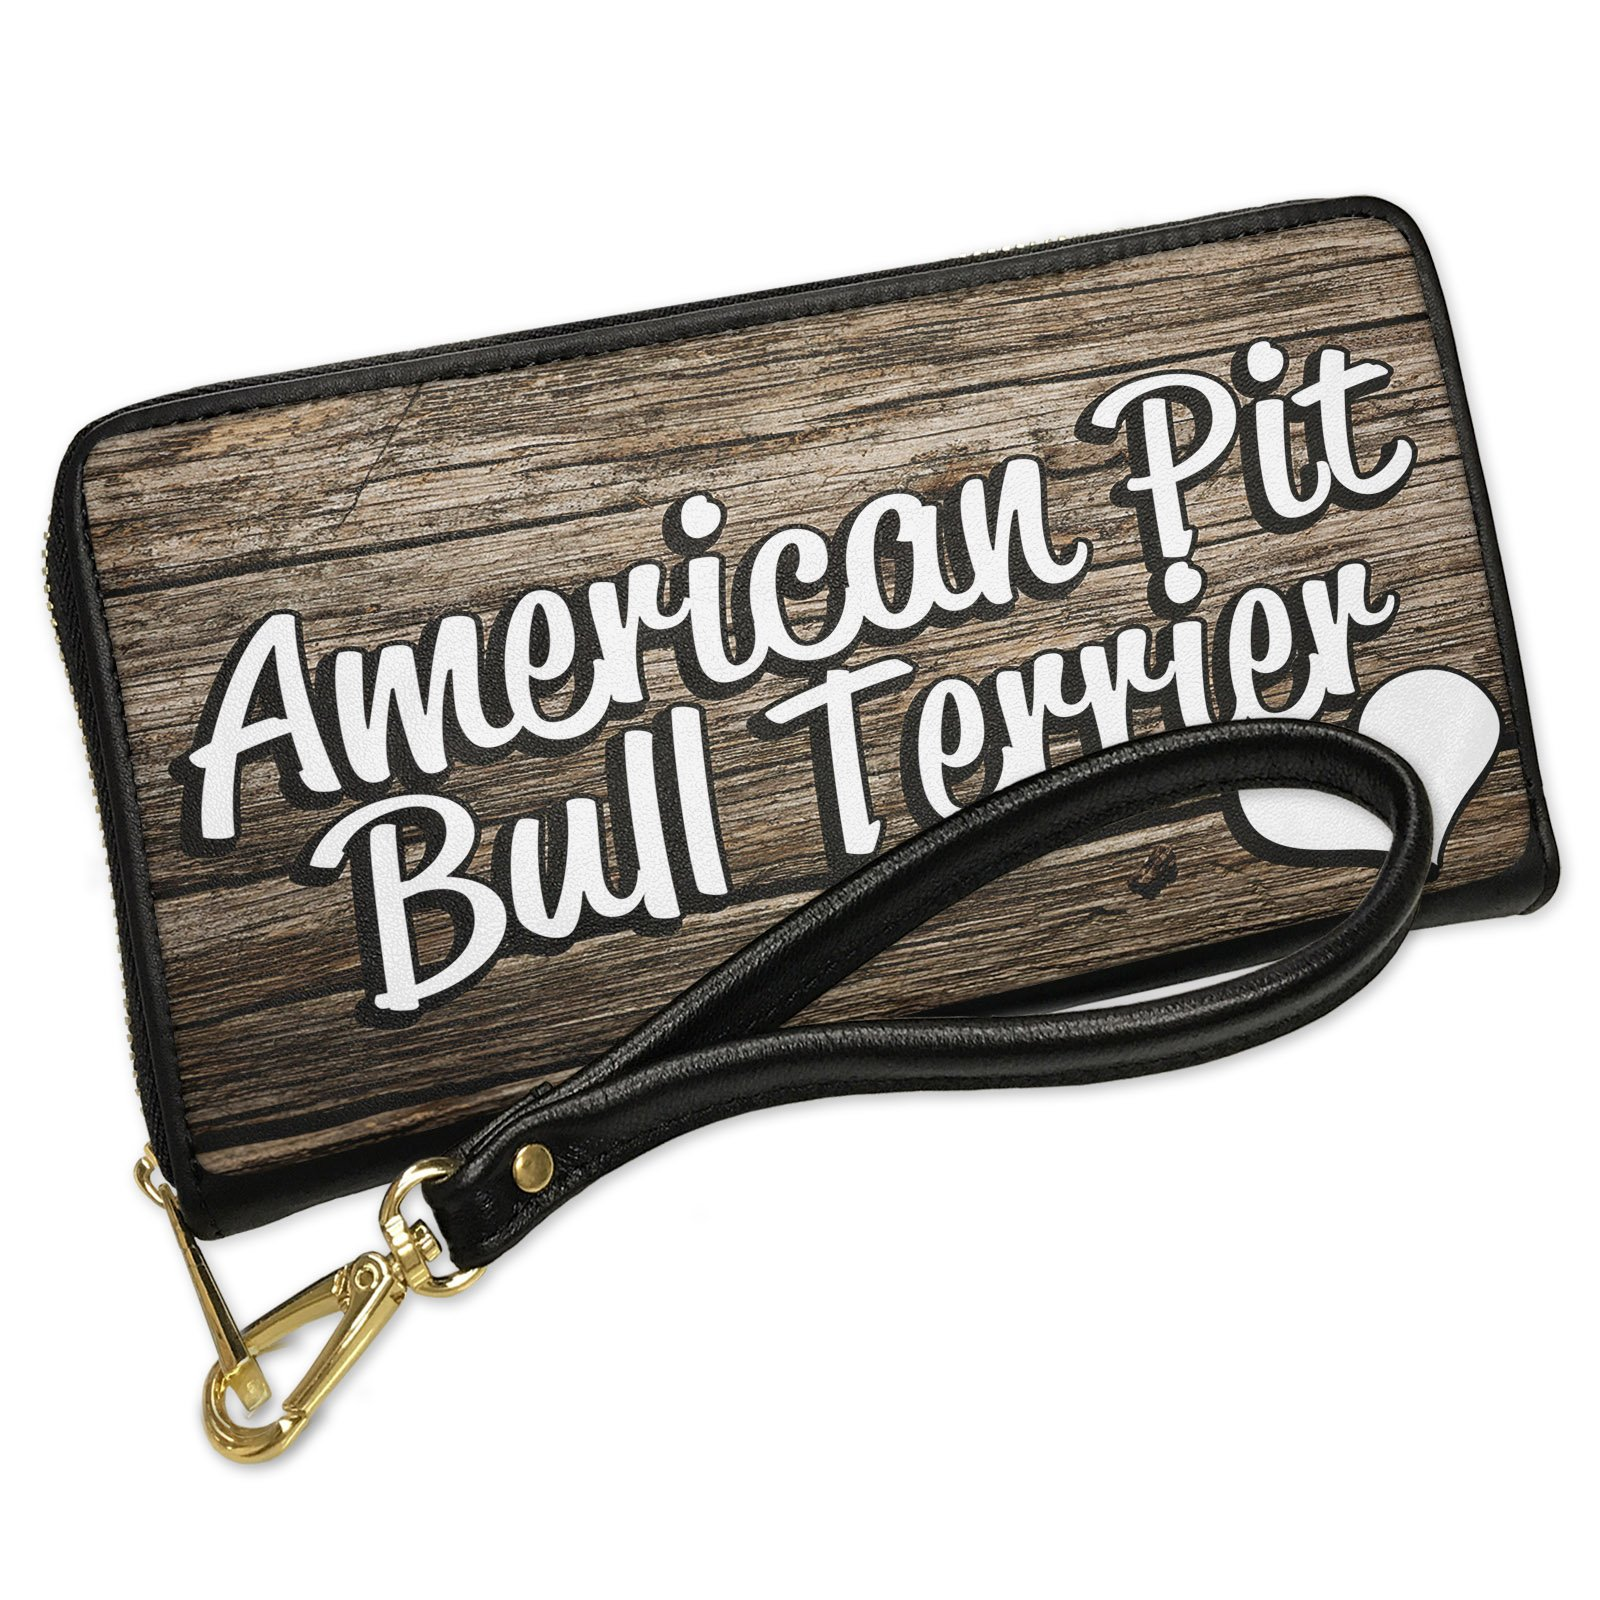 Wallet Clutch American Pit Bull Terrier, Dog Breed United States with Removable Wristlet Strap Neonblond